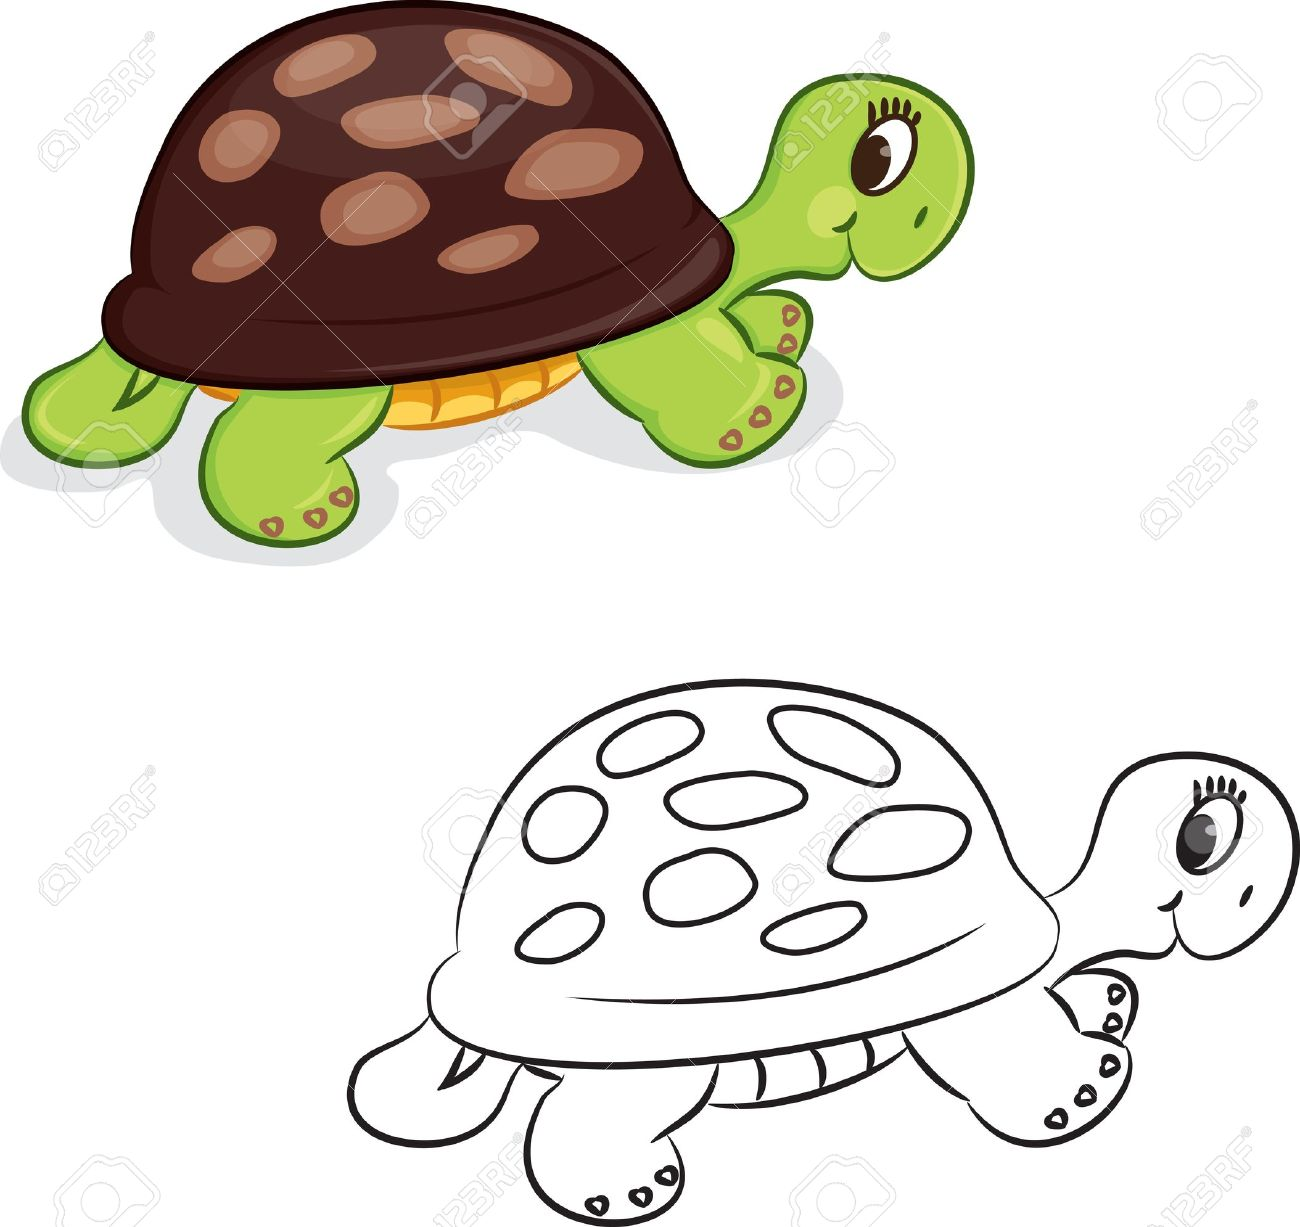 Cartoon Turtle Coloring Book Illustration Stock Vector